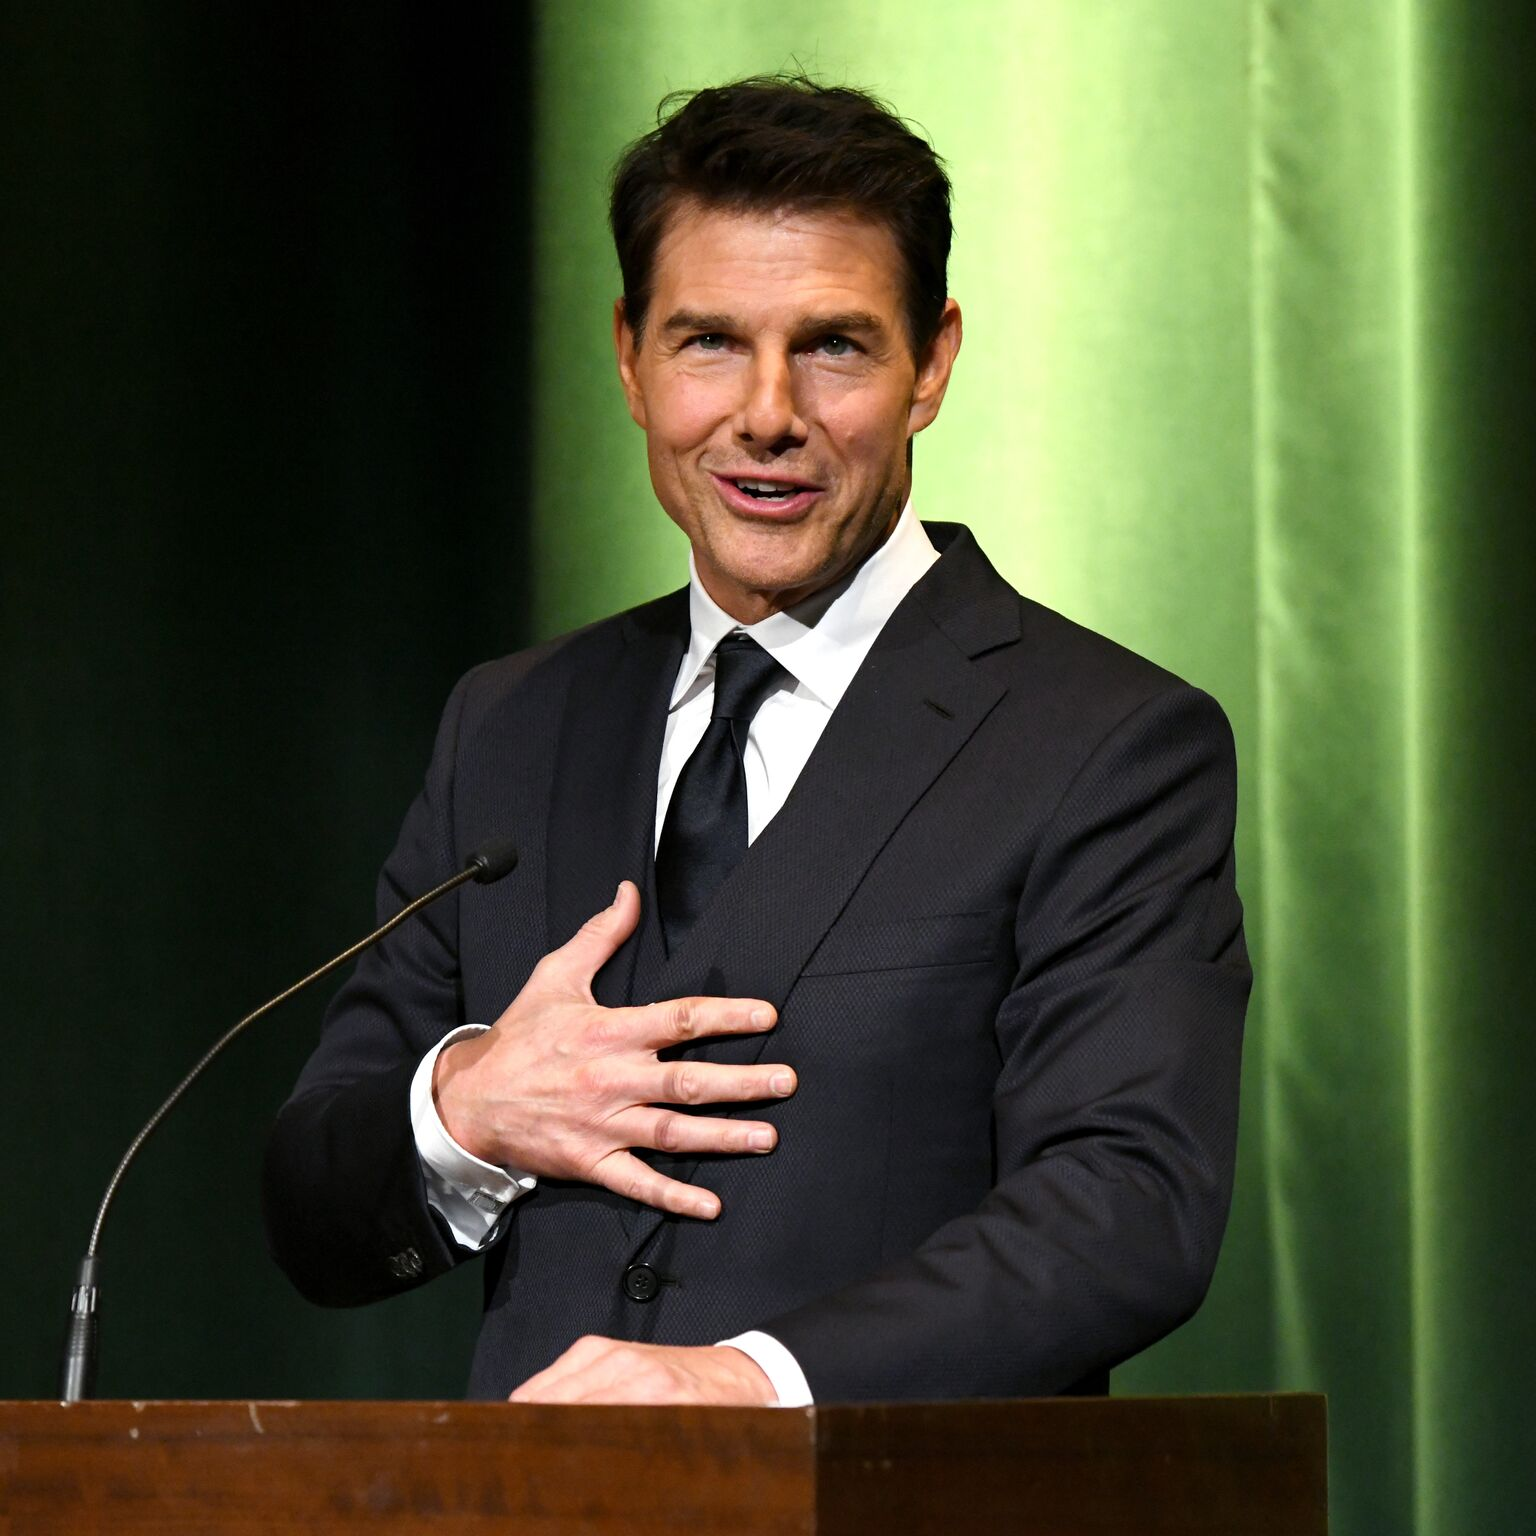 Tom Cruise speaks onstage during the 10th Annual Lumiere Awards at Warner Bros. Studios on January 30, 2019 in Burbank | Getty Images